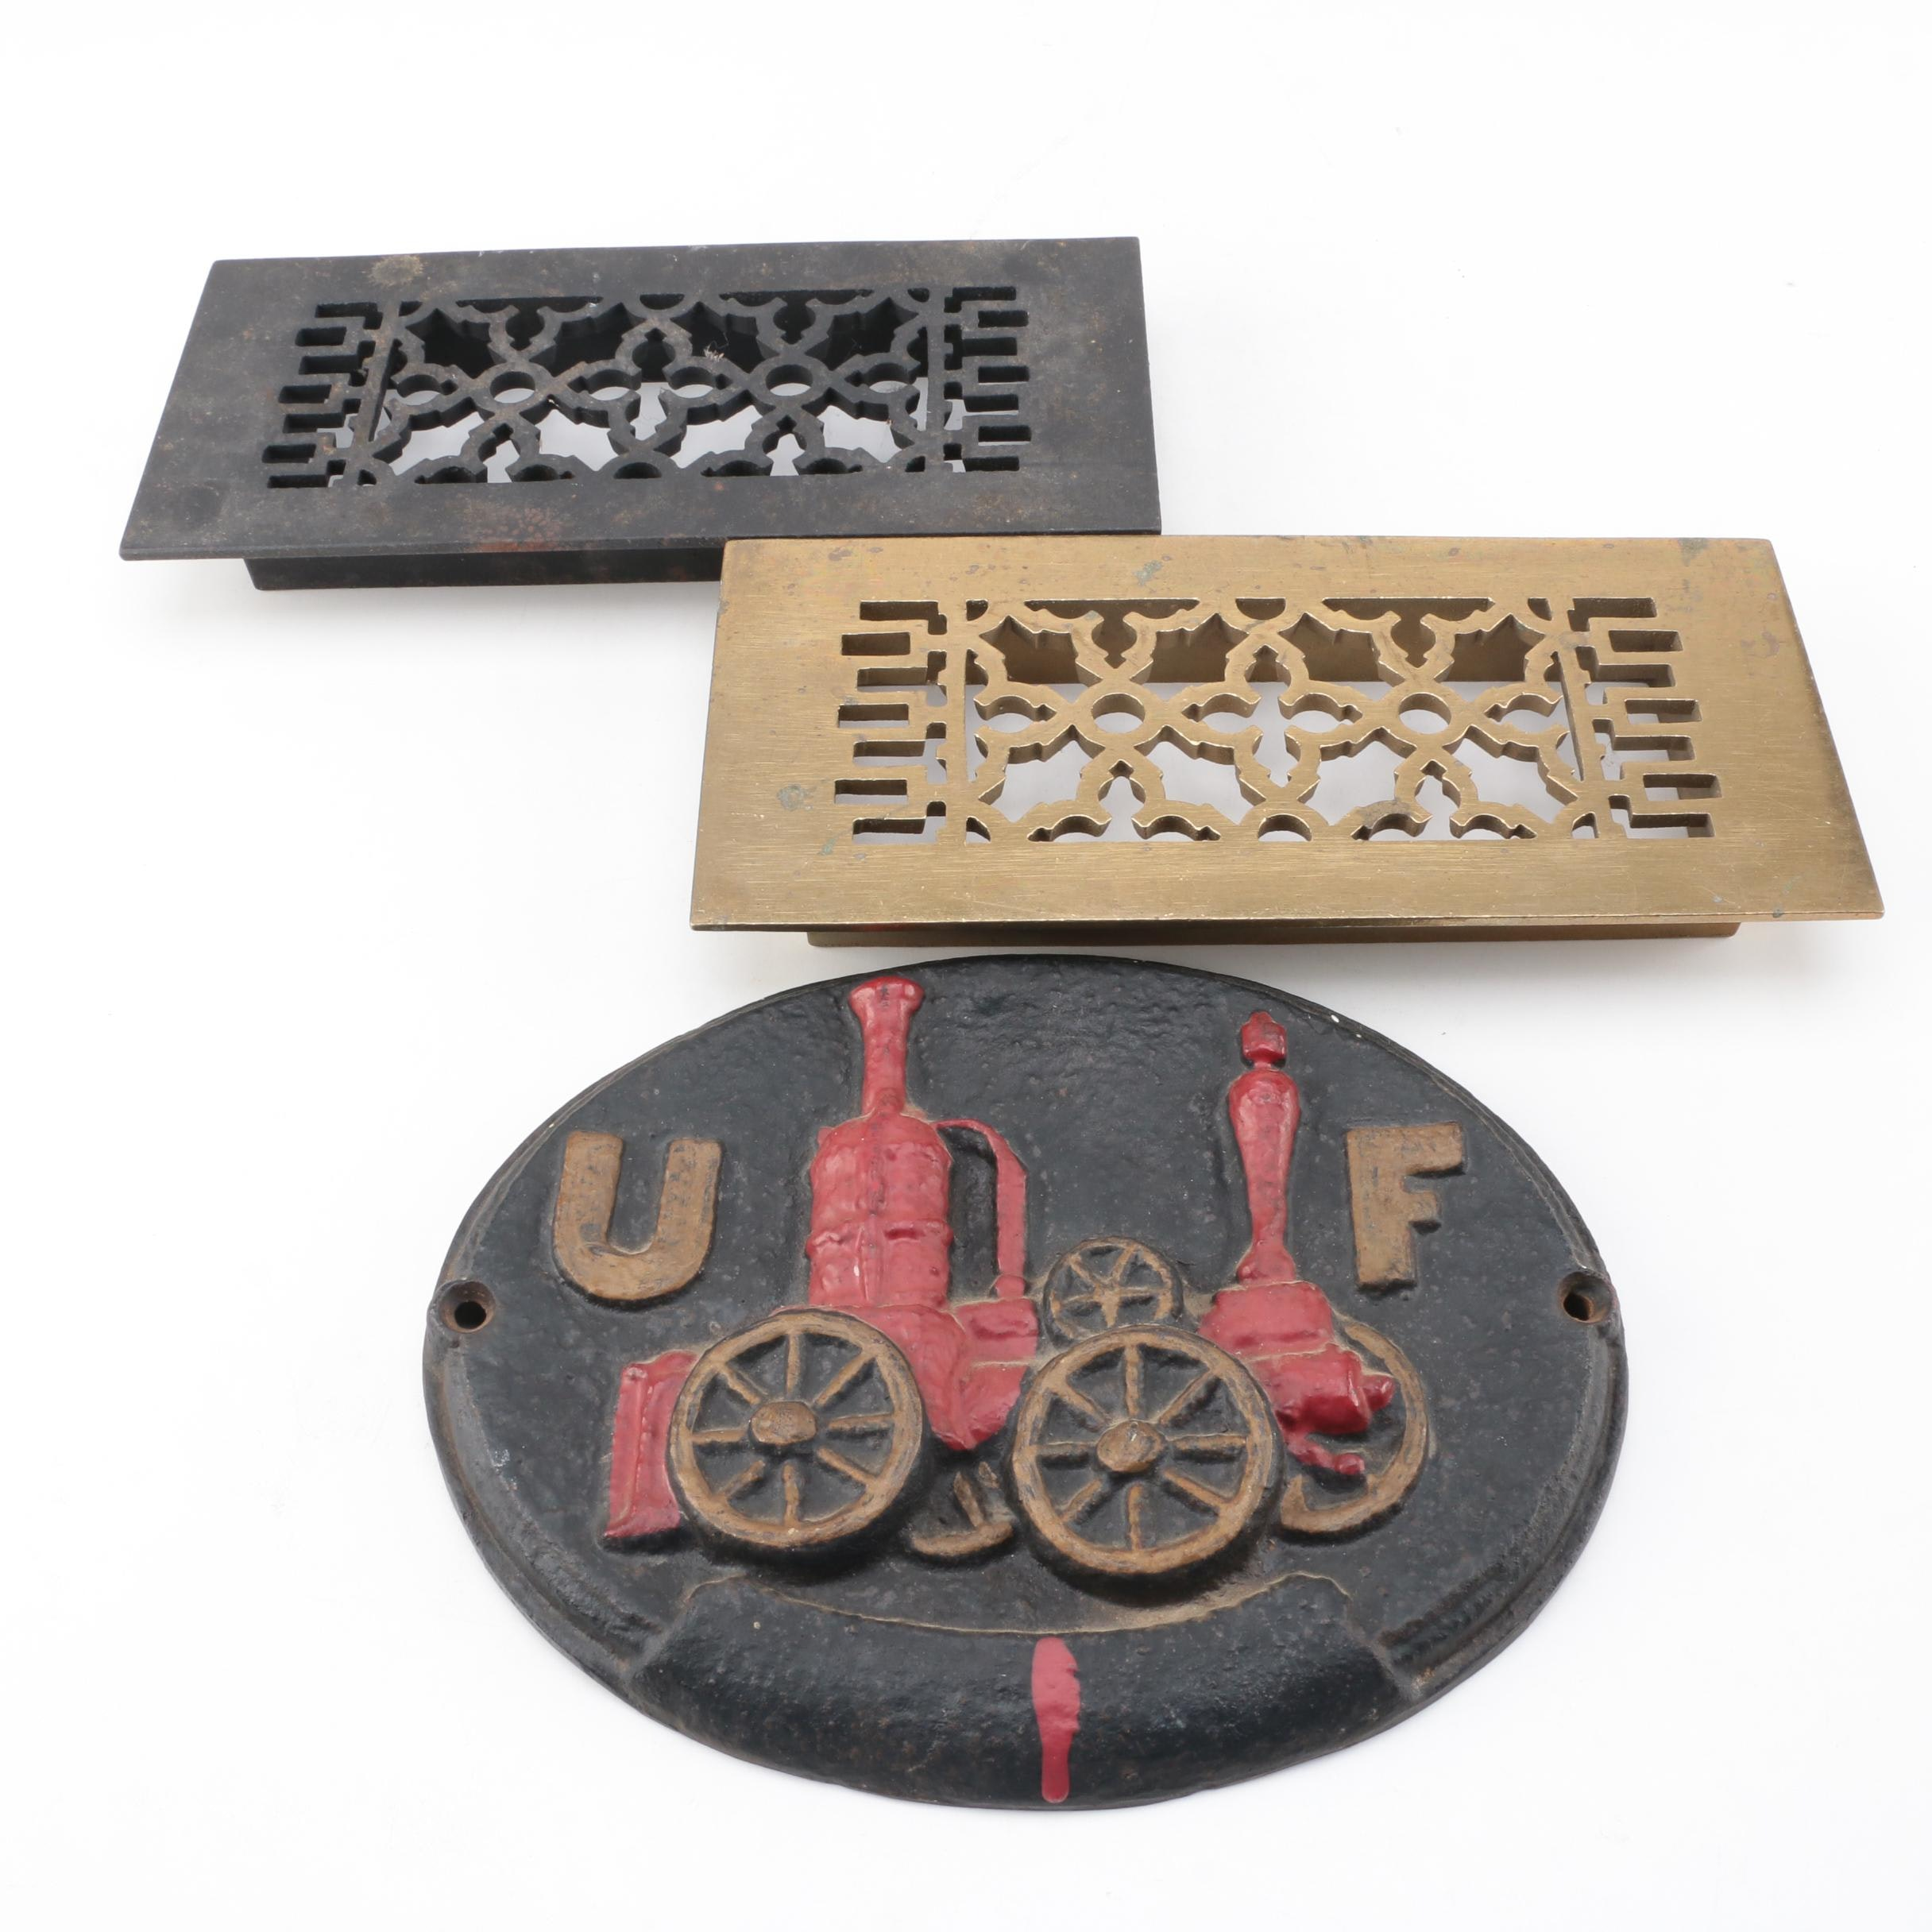 Vintage Return Grates and Cast Iron Wall Decor